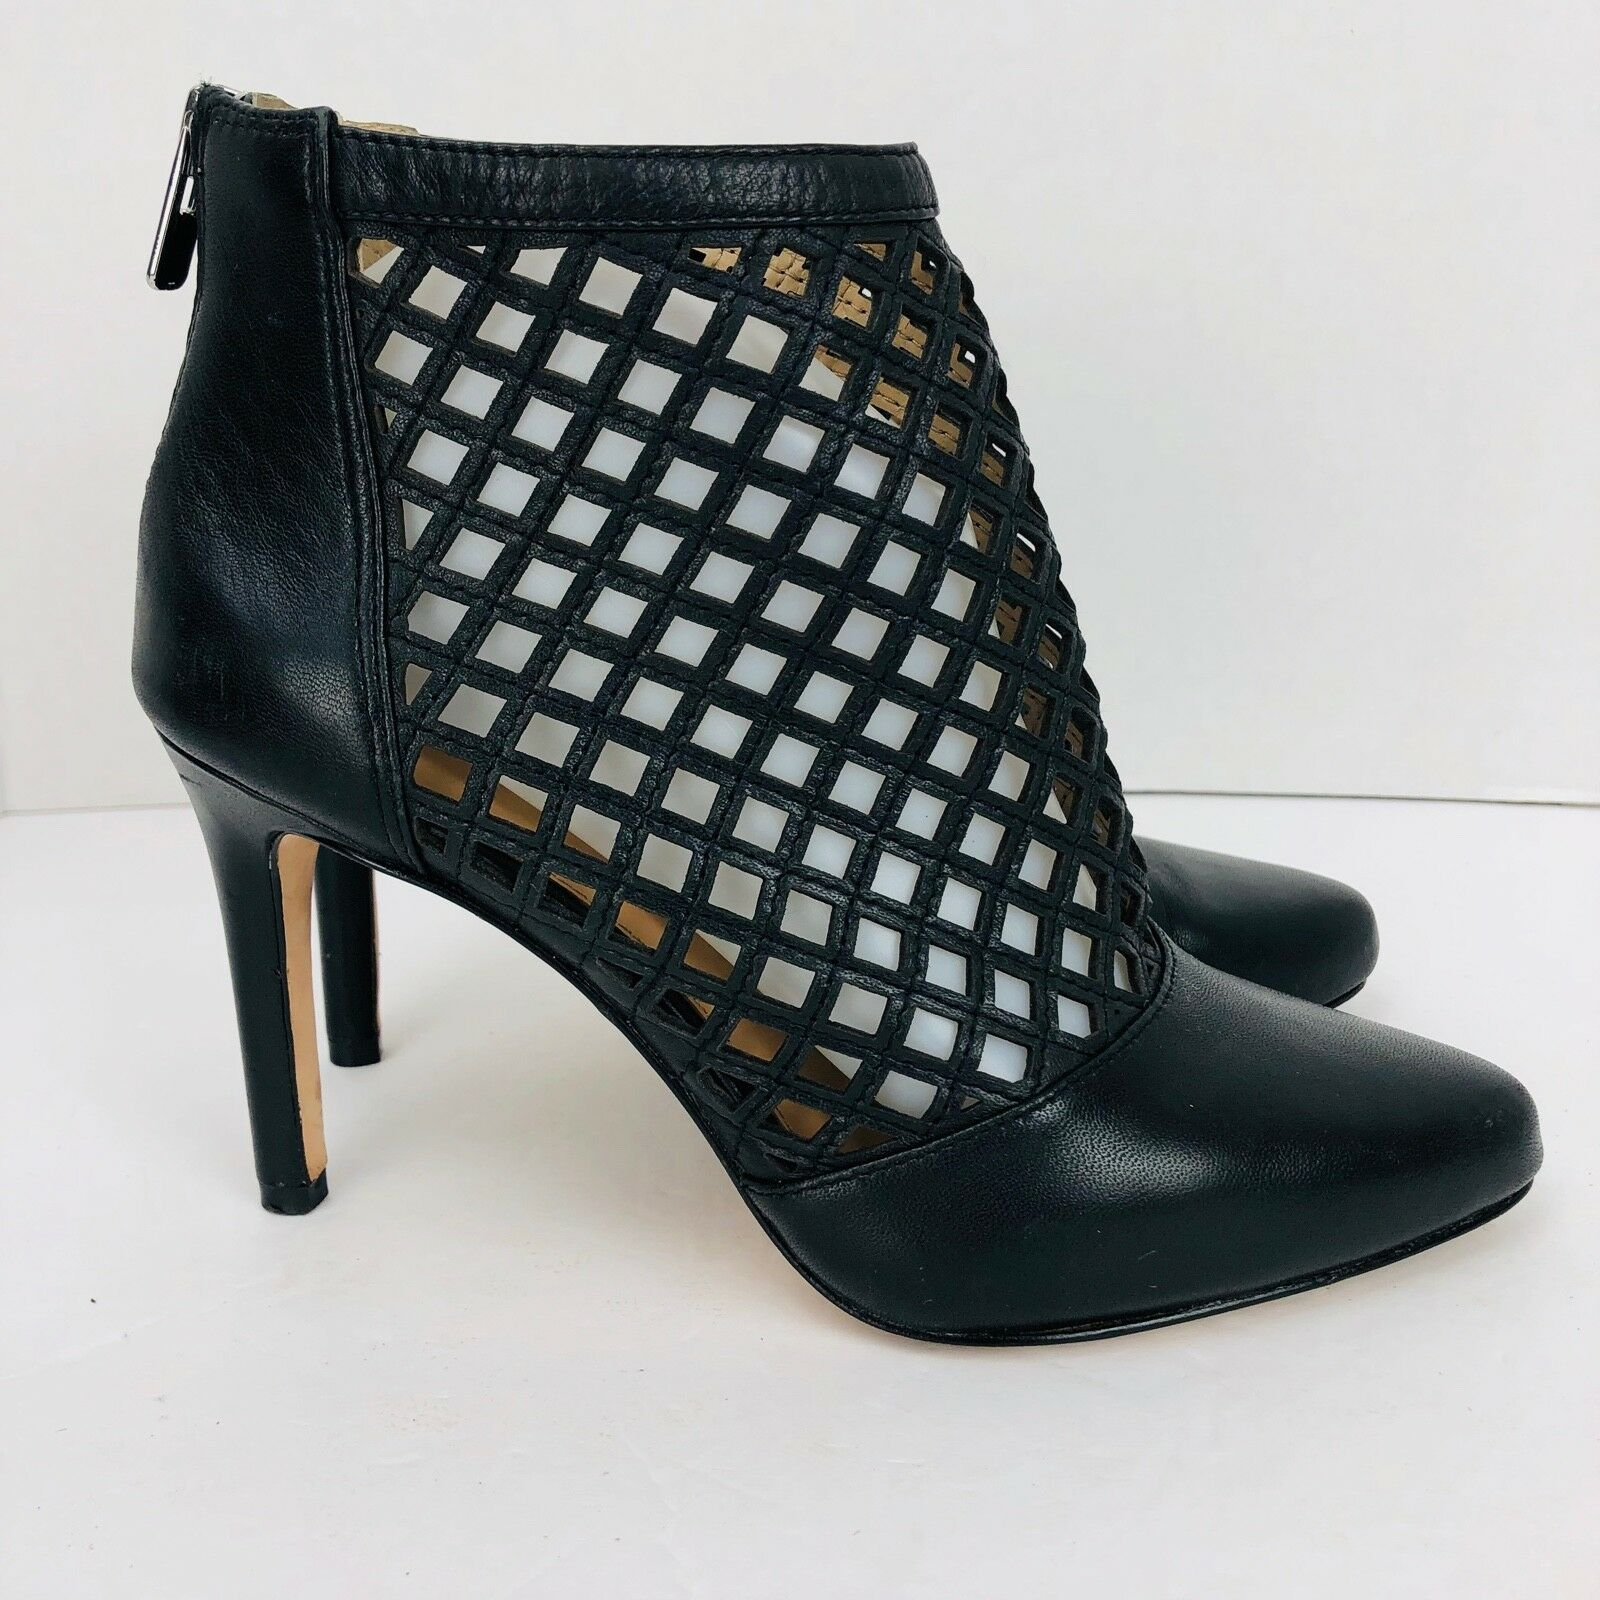 Antonio Melanie Black Cut Out Leather Ankle Bootie Stiletto Heel Zip Pump